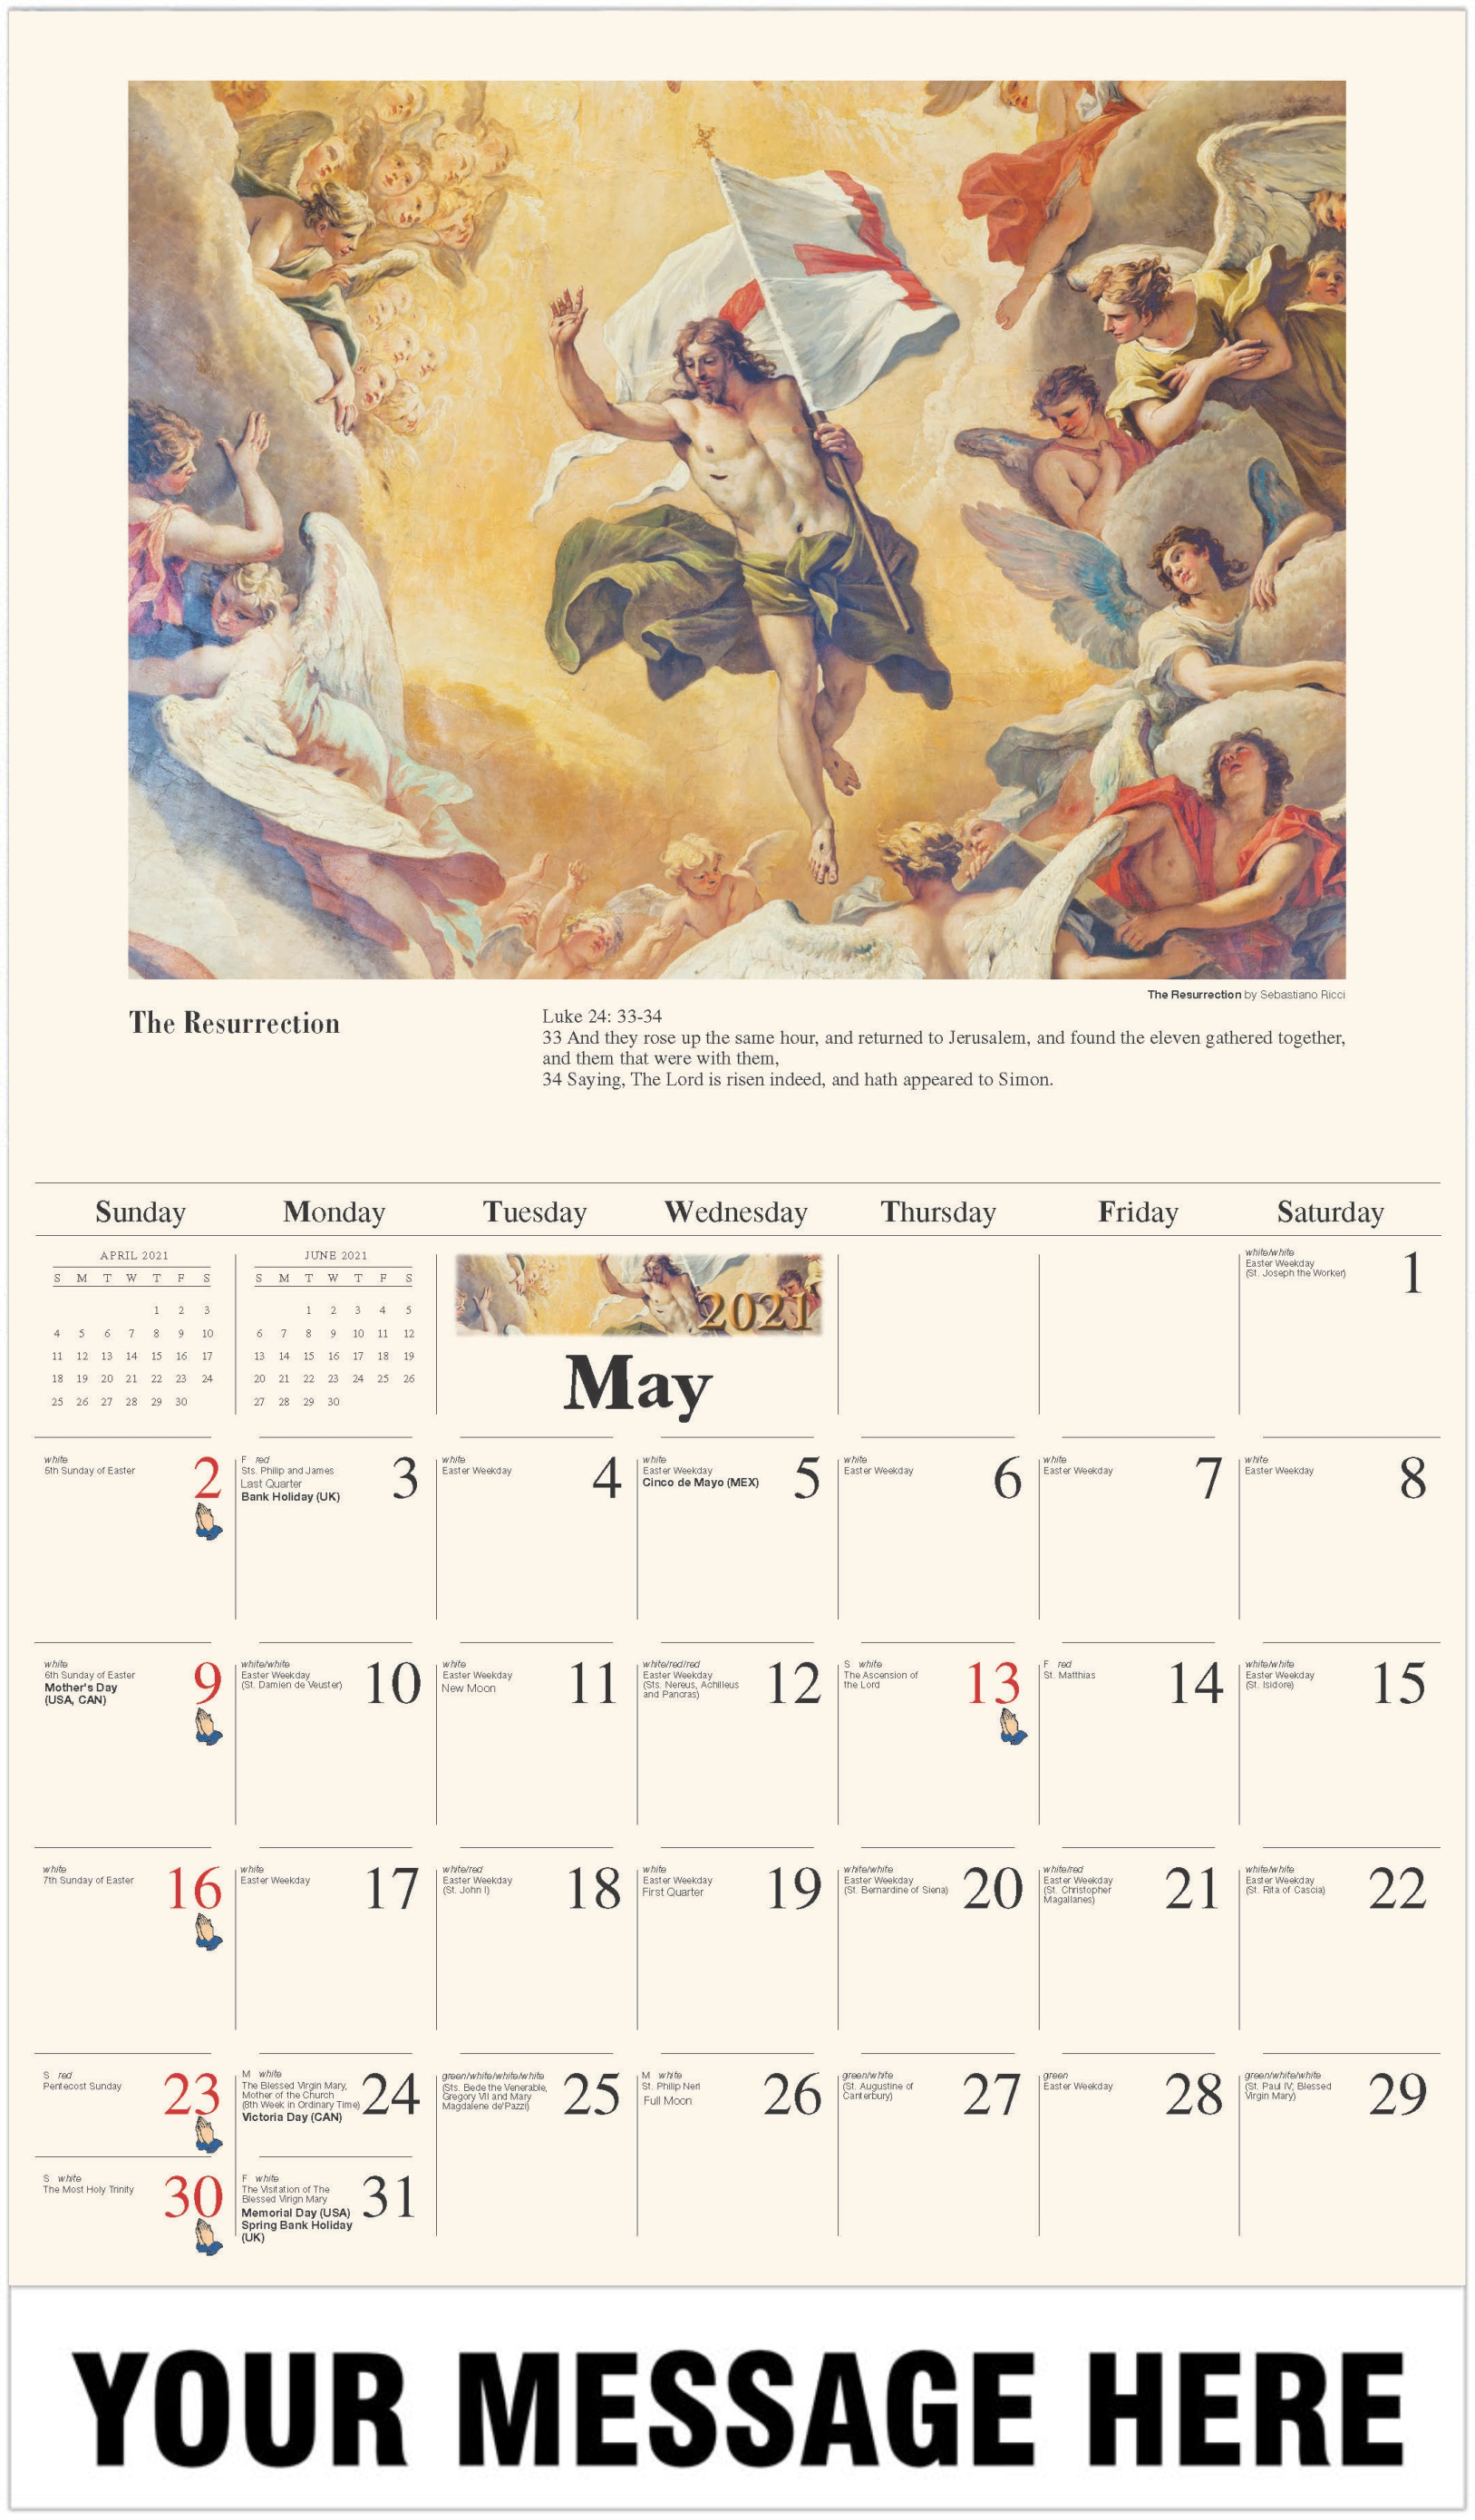 The Resurrection - May - Catholic Inspiration 2021 Promotional Calendar